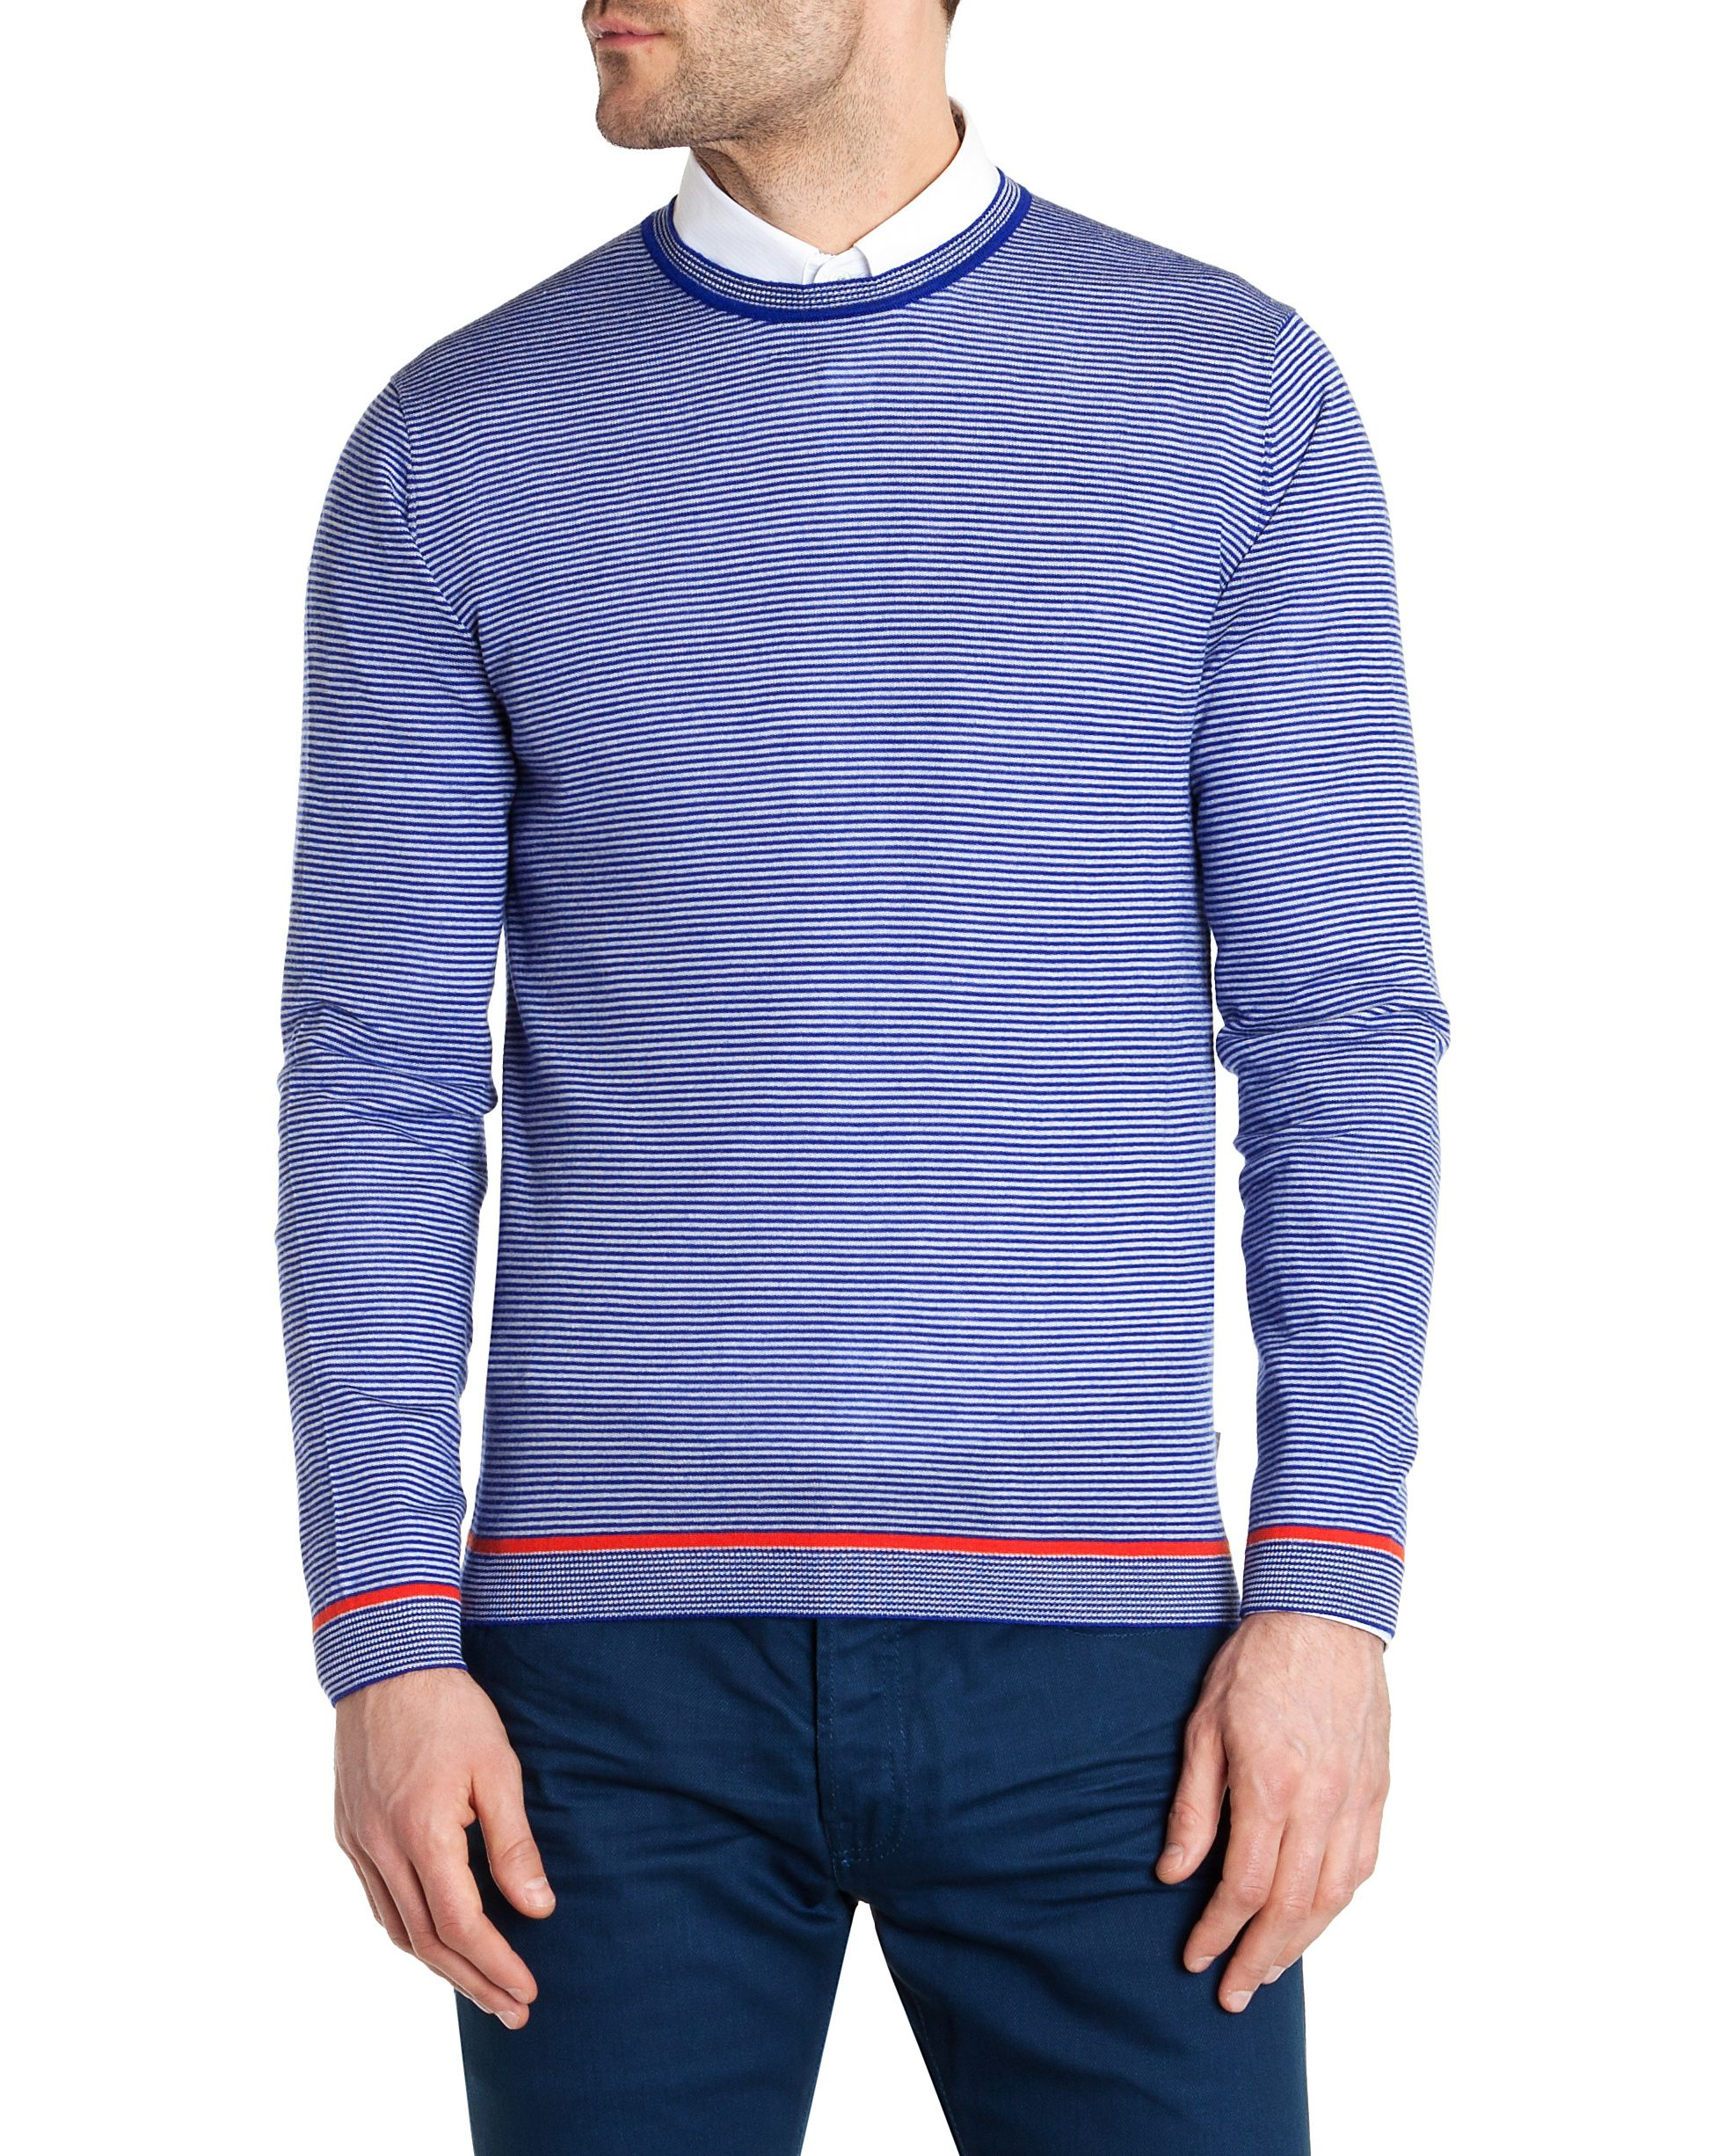 Tenkay striped crew neck jumper